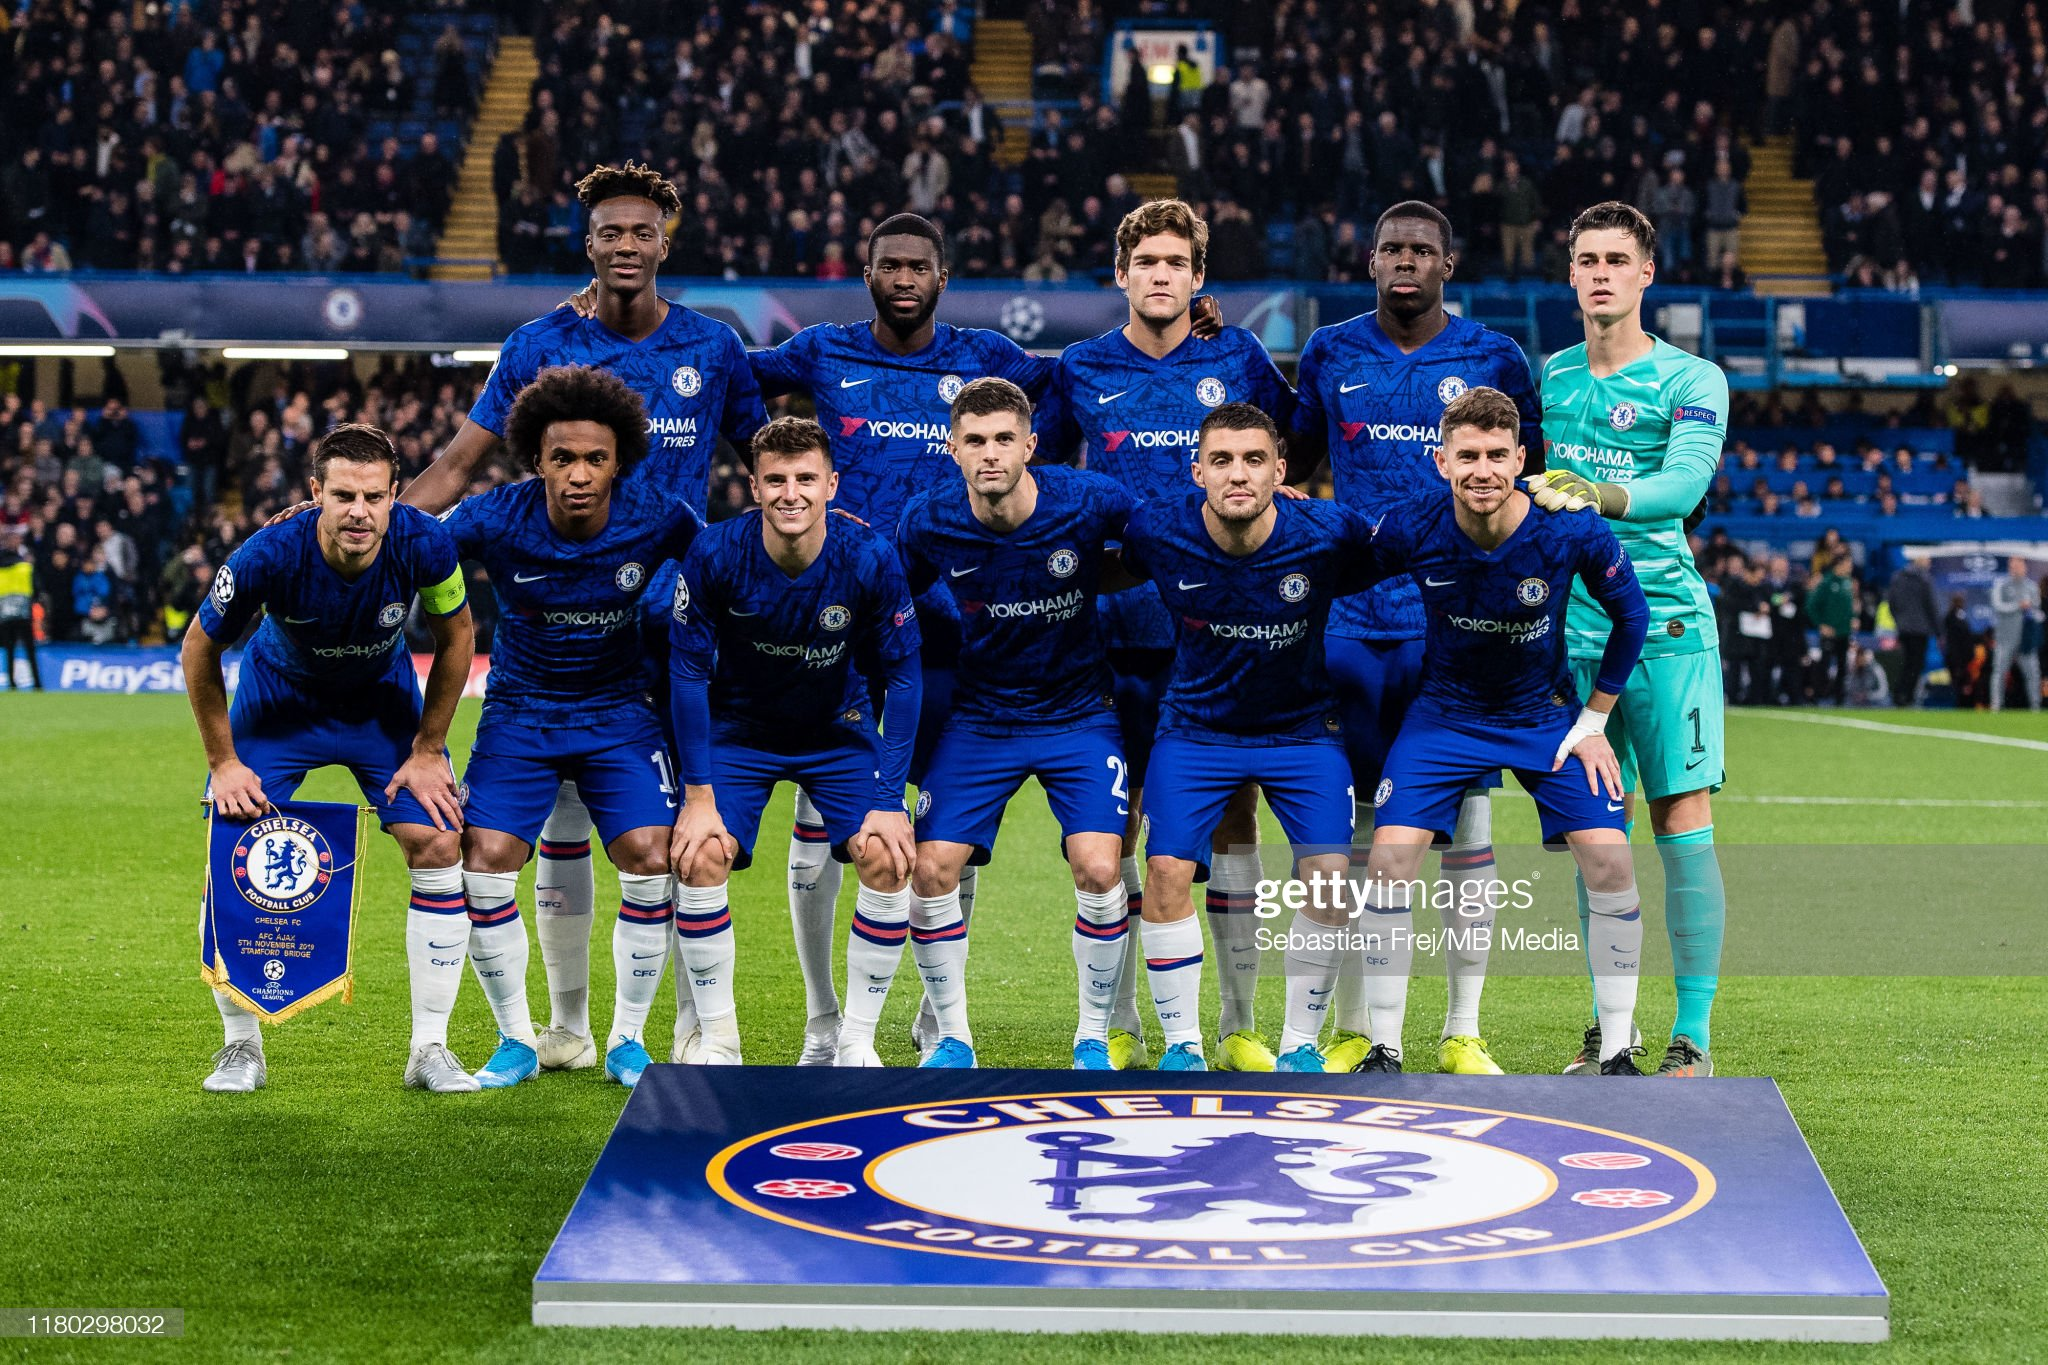 ¿Cuánto mide Tammy Abraham? - Altura - Real height Chelsea-fc-team-pose-for-team-photo-from-top-left-tammy-abraham-picture-id1180298032?s=2048x2048